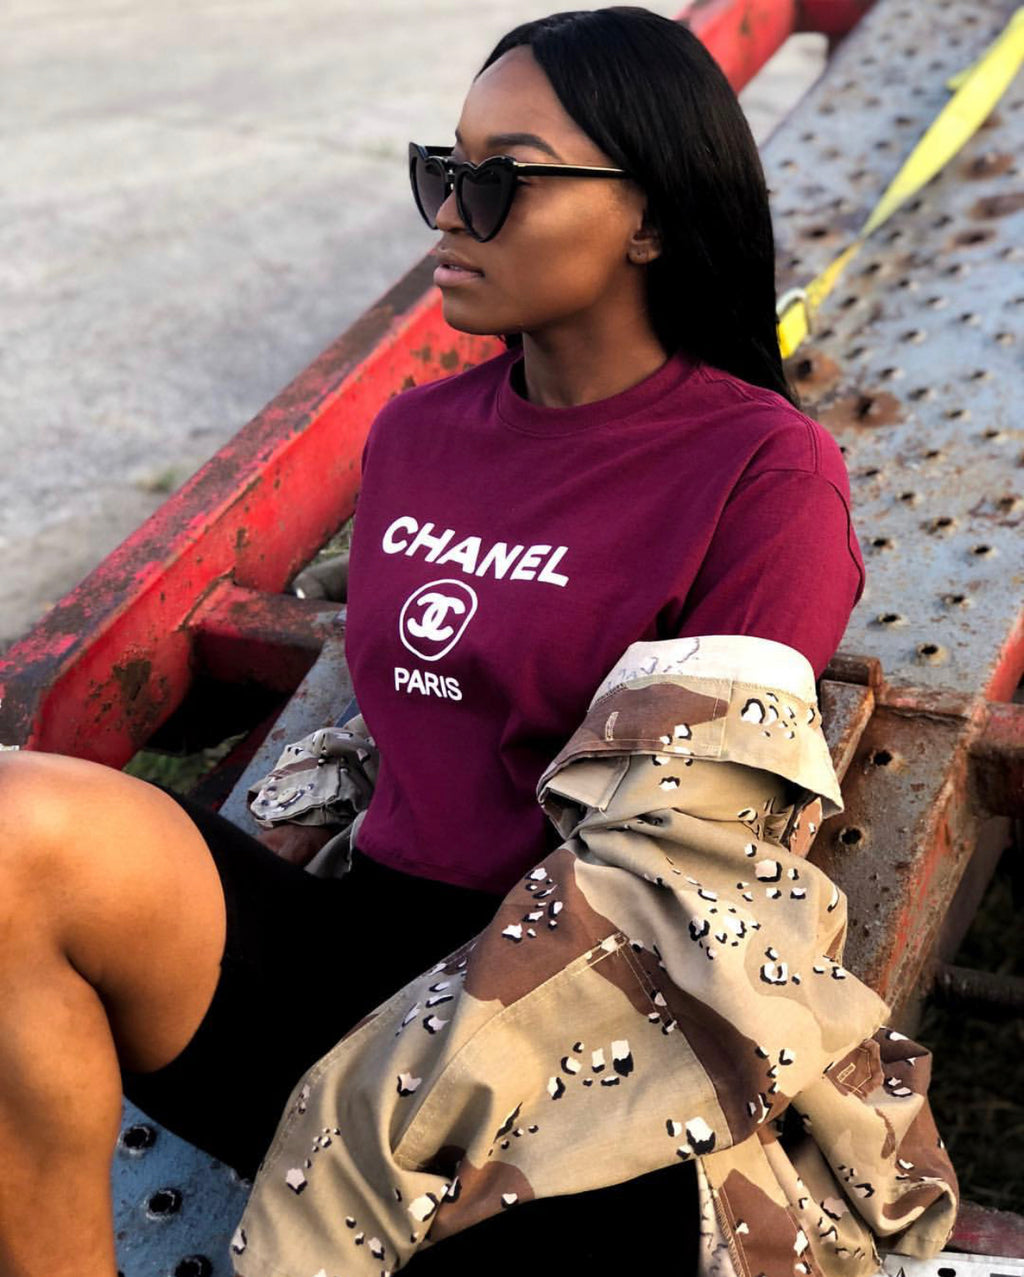 Chanel Cropped T-Shirt